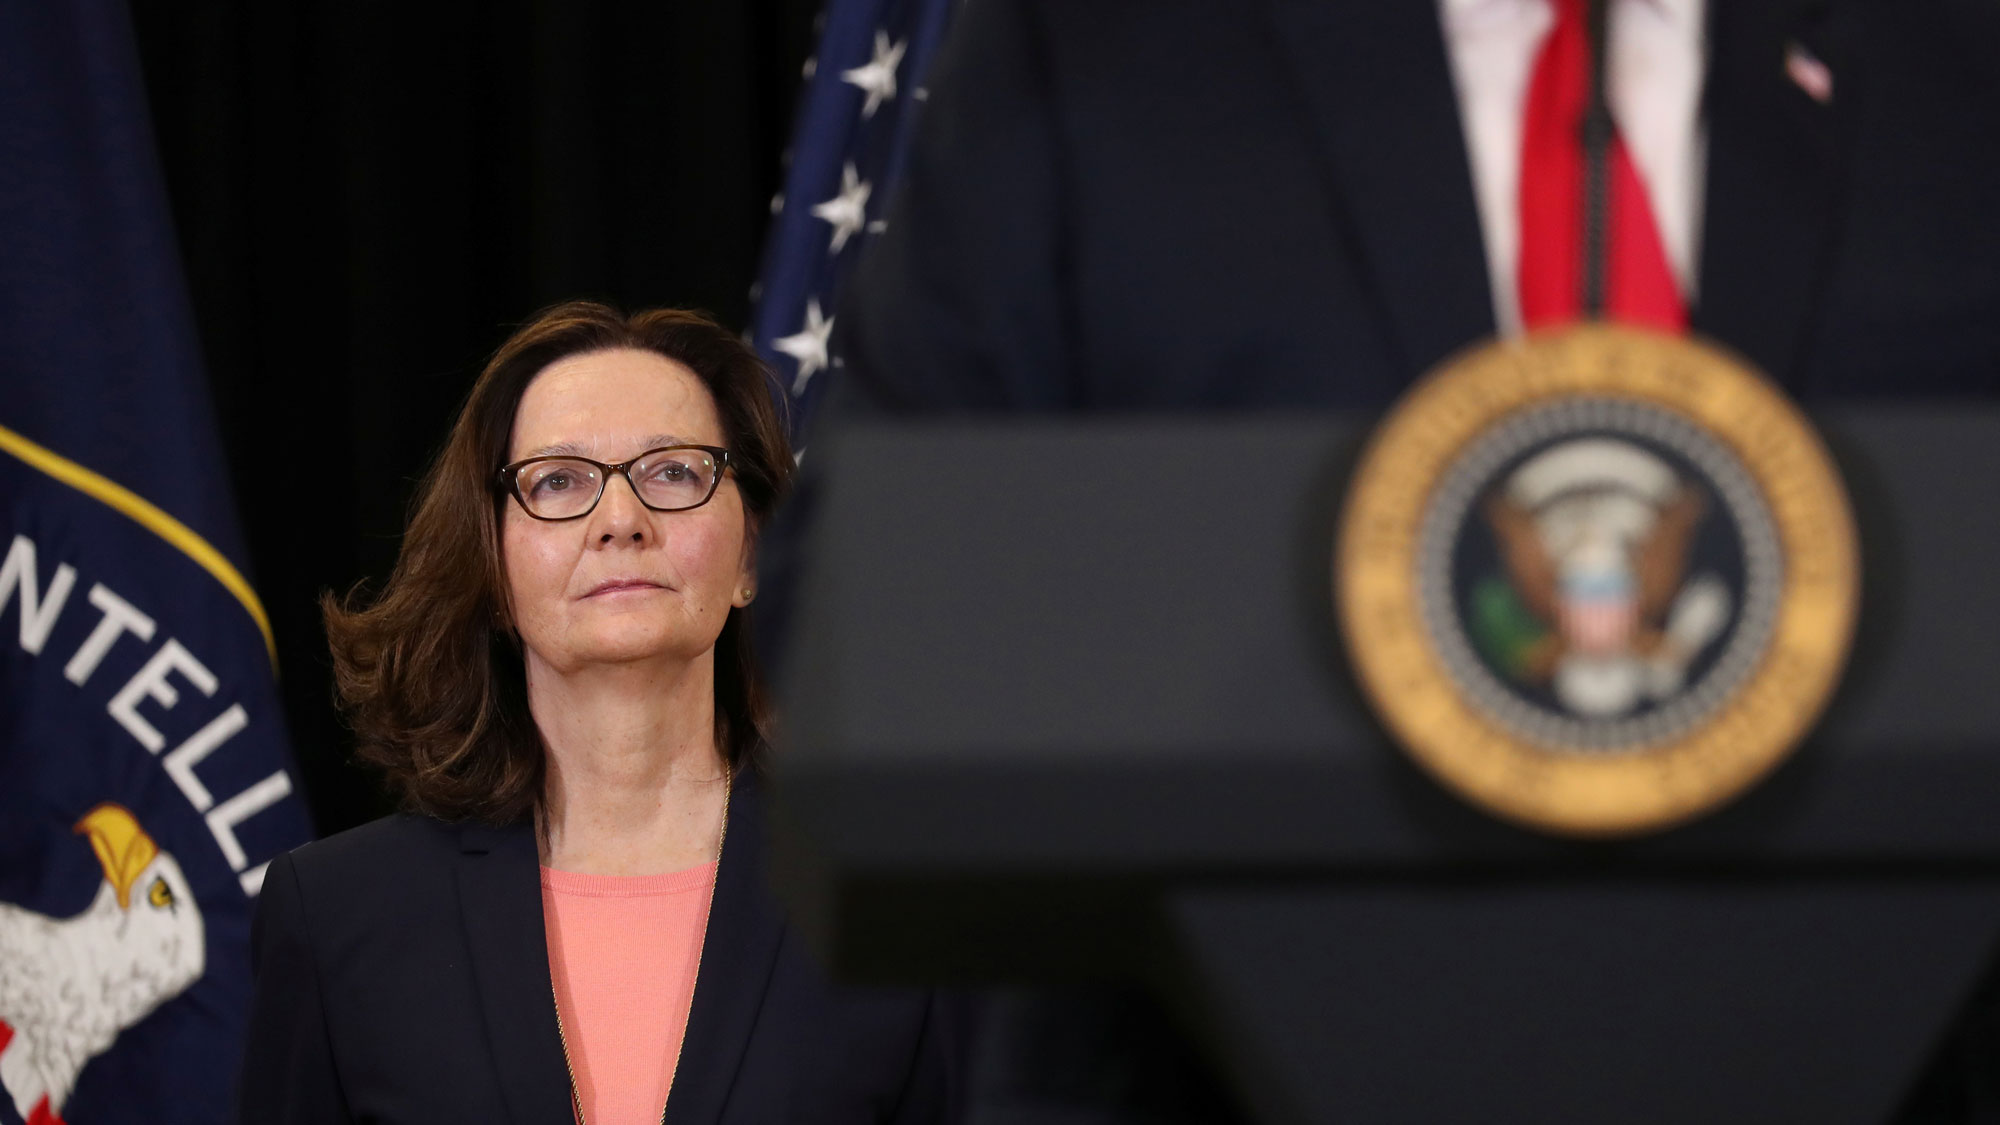 CIA Director Gina Haspel stands behind President Donald Trump with the Agency and US flags behind her.